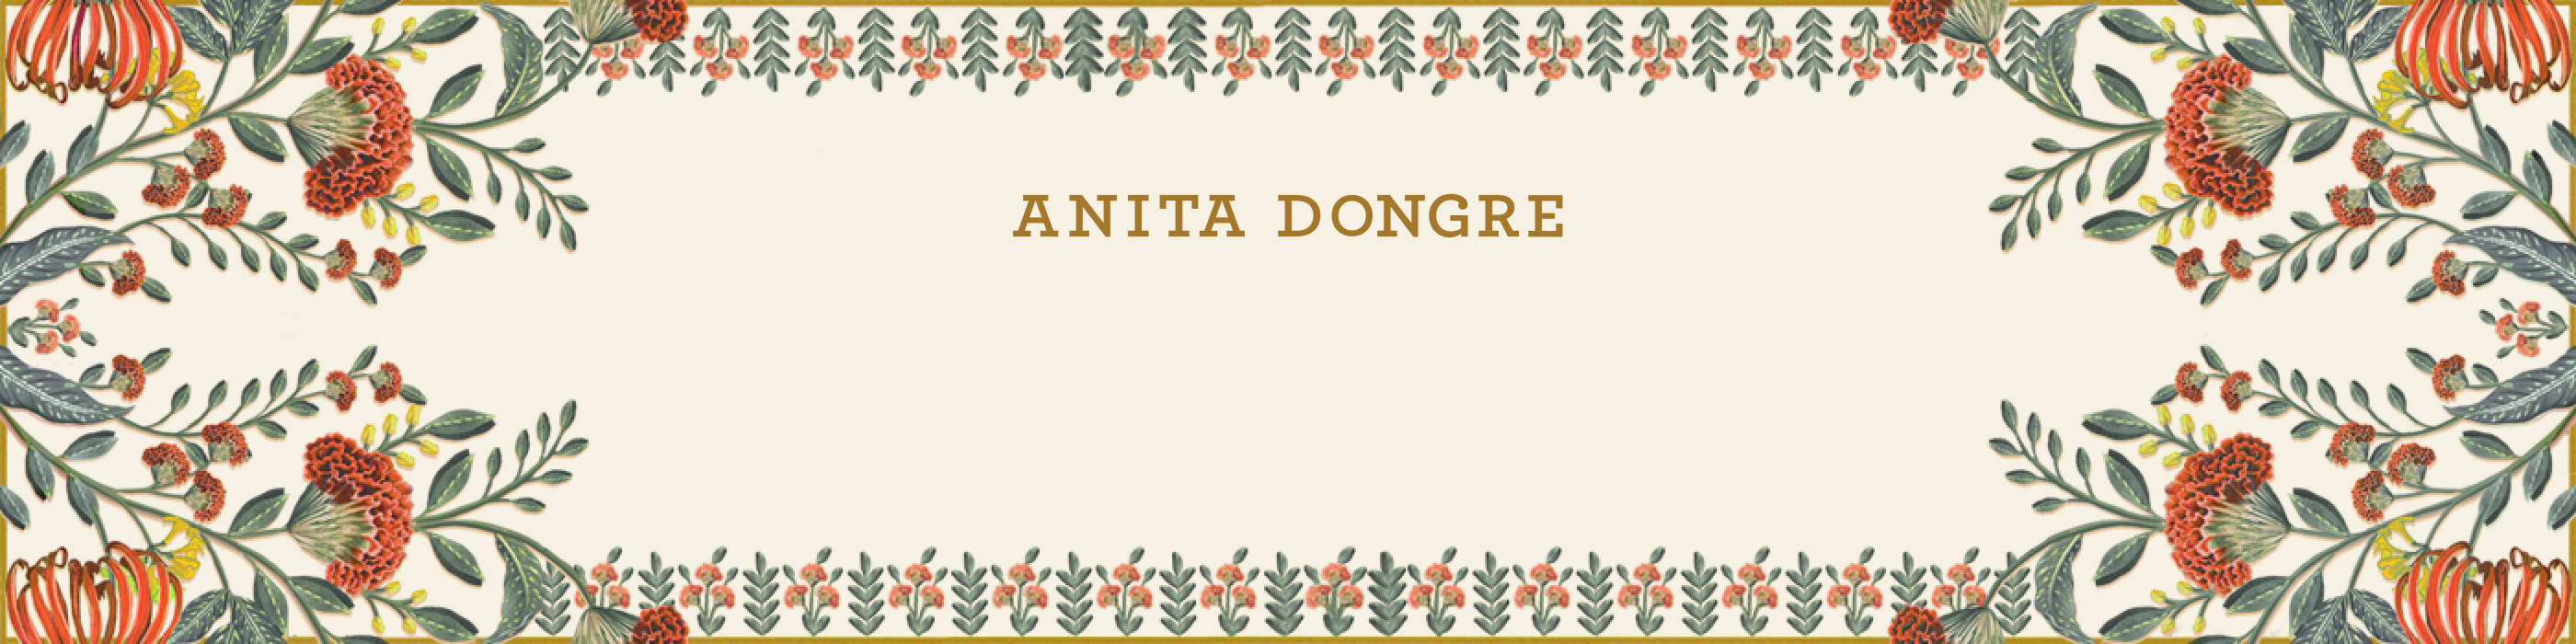 Anita Dongre - Online